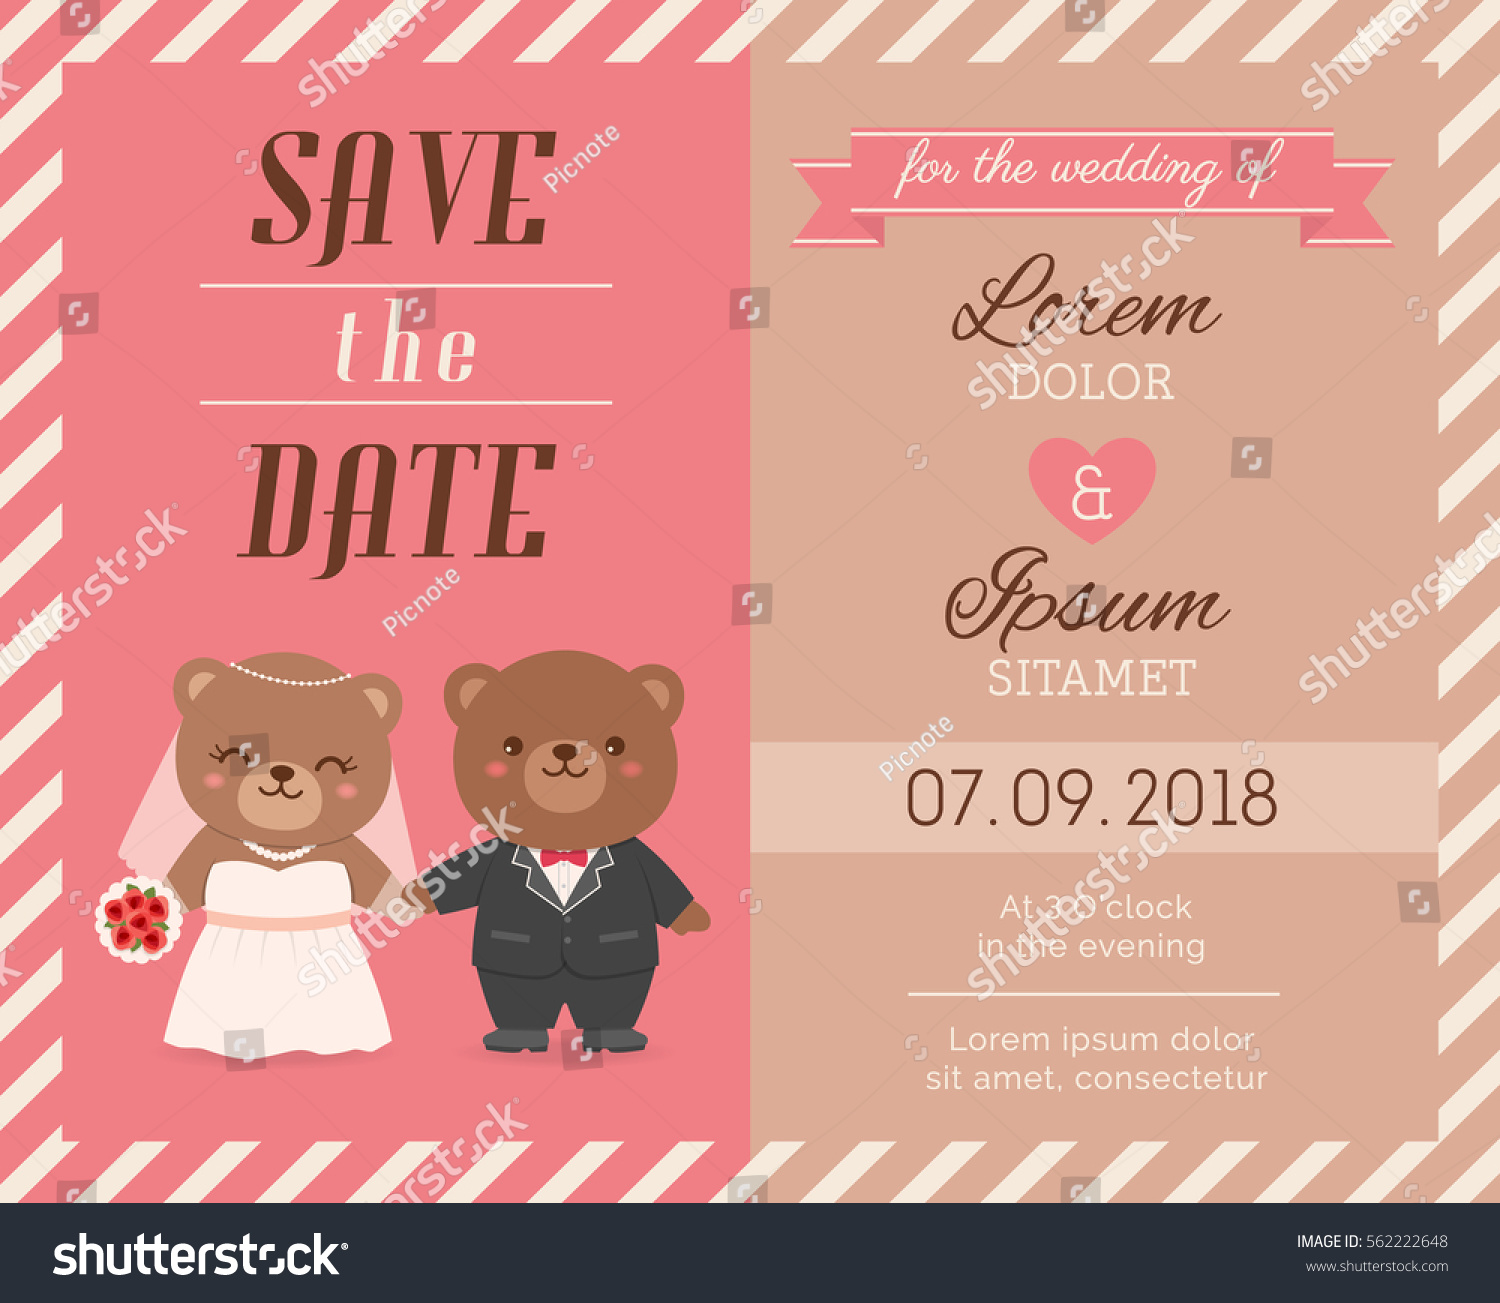 Cute Bear Couple Illustration For Wedding Invitation Card Design Template